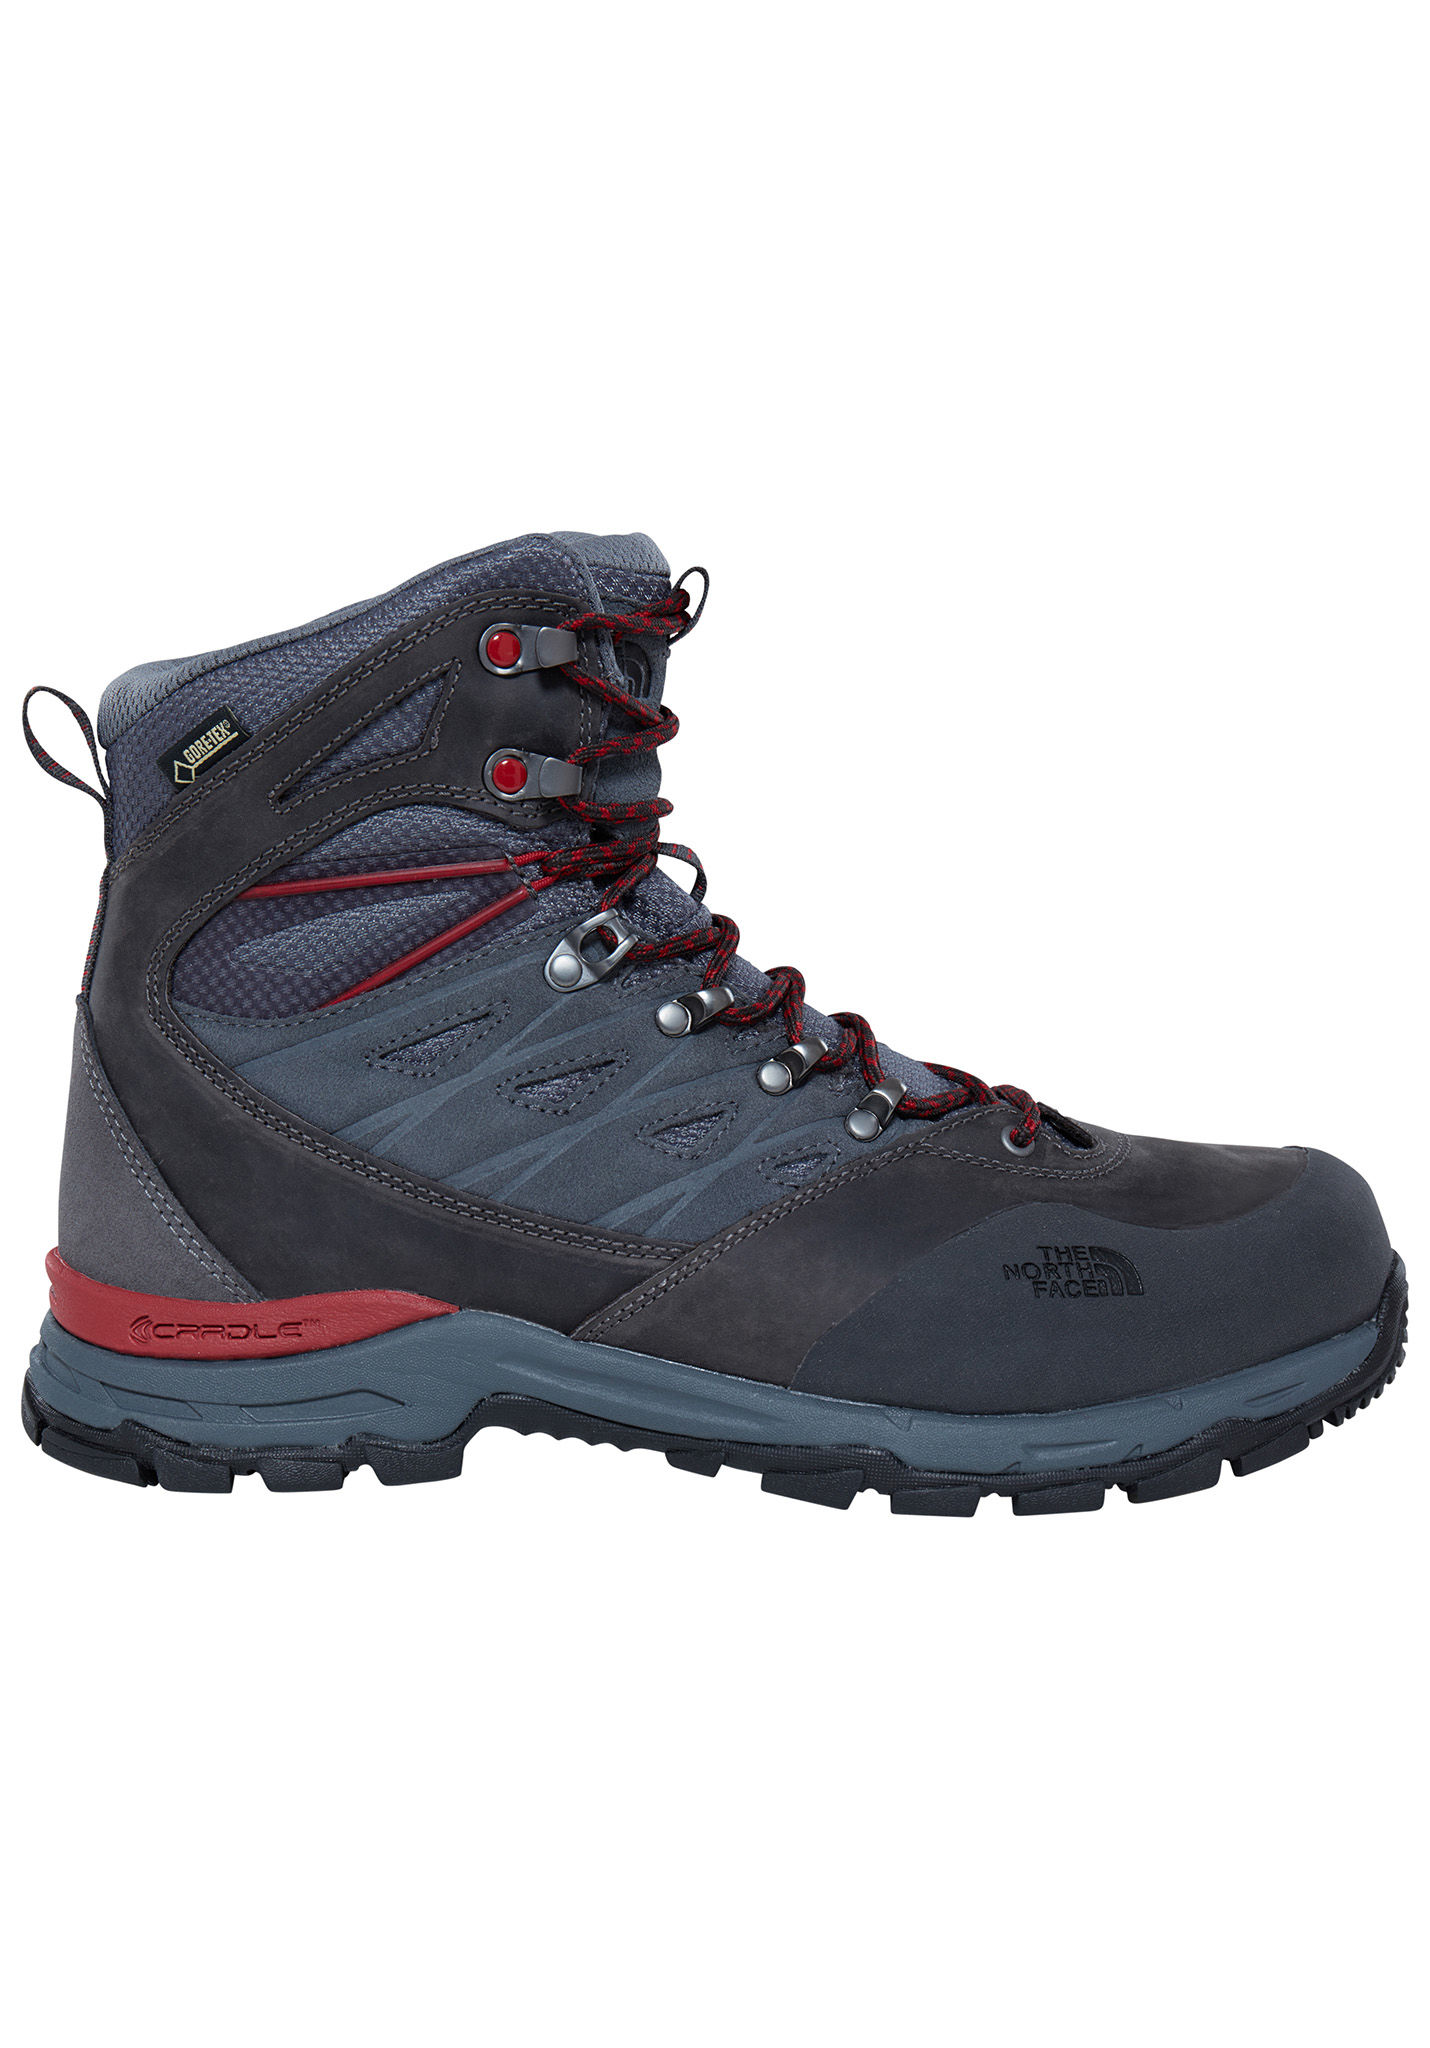 THE NORTH FACE Hedgehog Trek GTX - Scarpe da trekking per Uomo - Grigio -  Planet Sports b839f159d71c